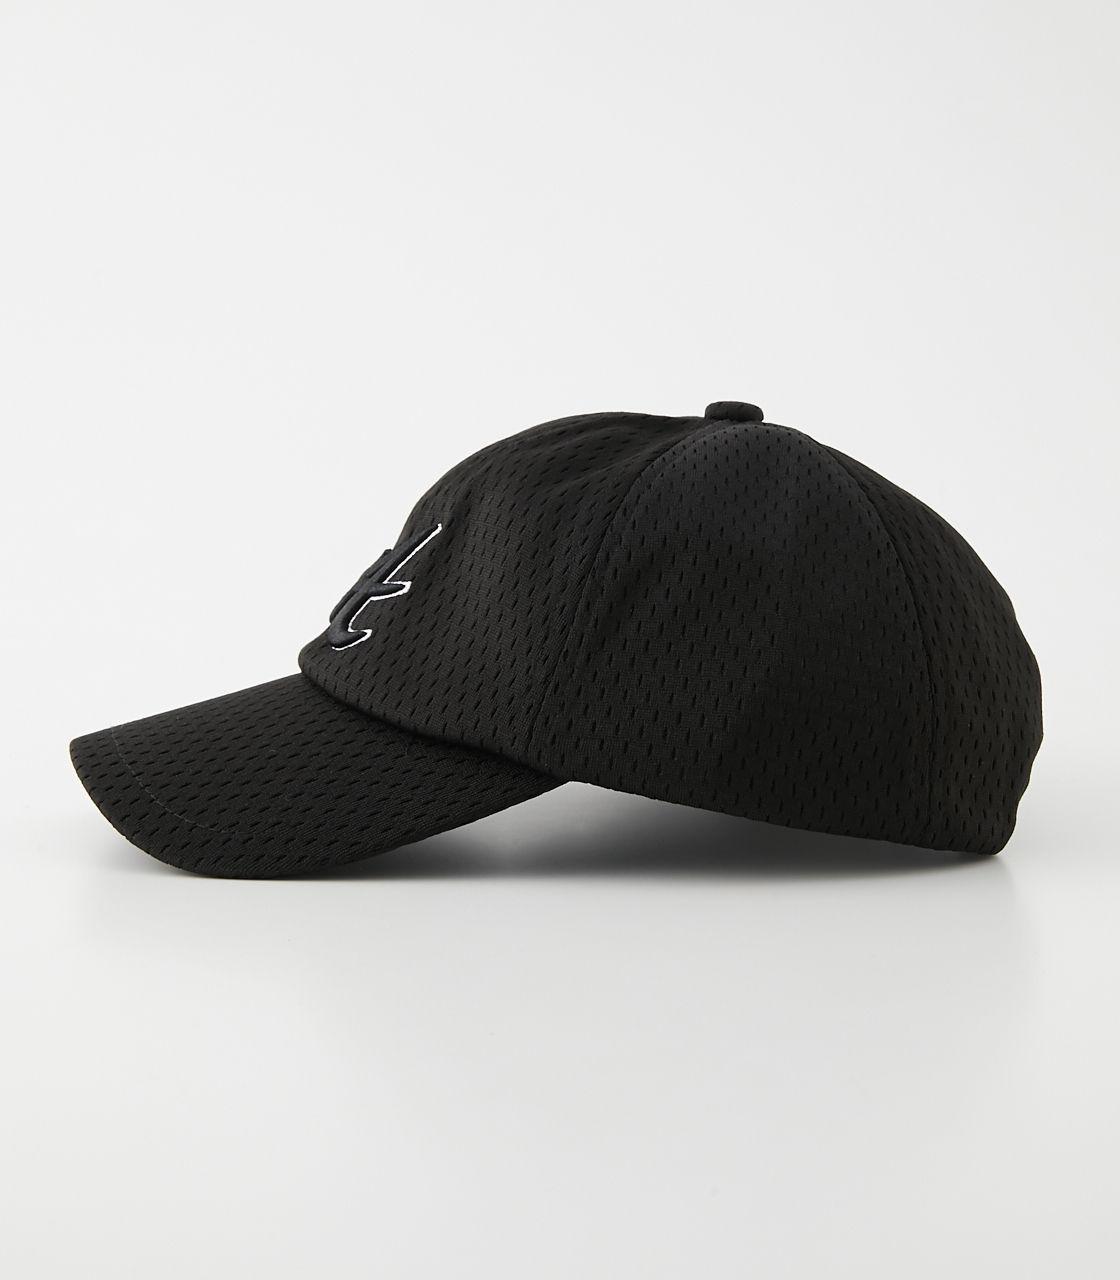 A LOGO ALL MESH CAP/アロゴオールメッシュキャップ 詳細画像 BLK 3